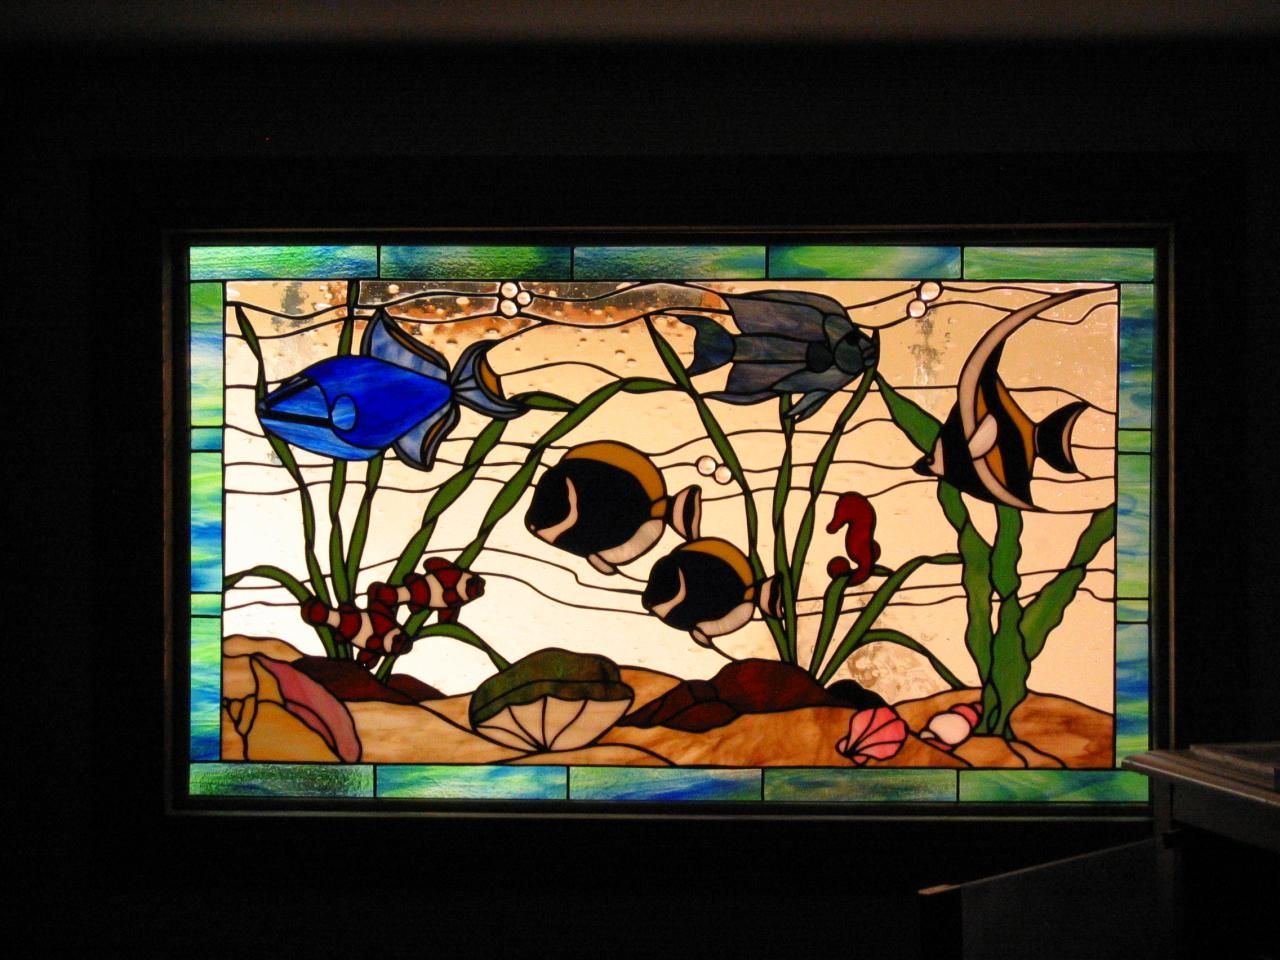 Aquarium Stained Glass Pattern Google Search Glass